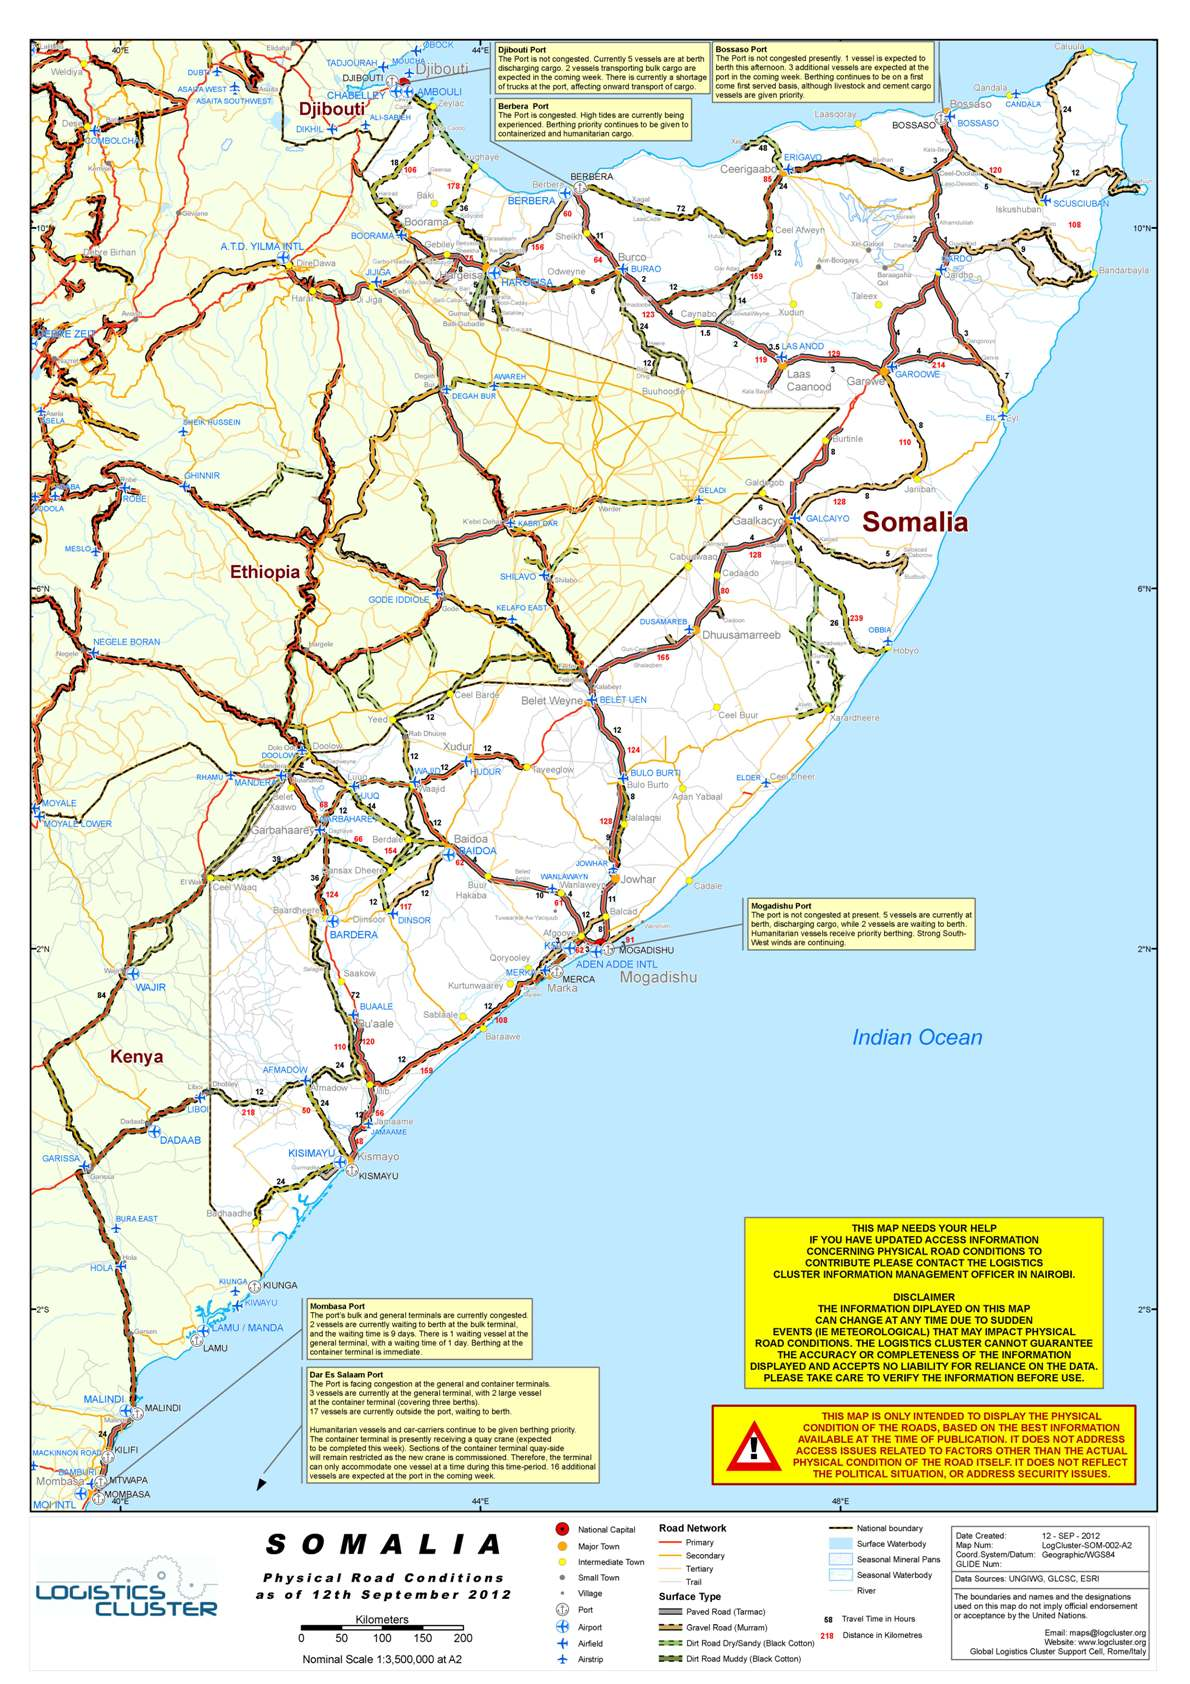 Somalia Road Conditions as at 28th November 2012